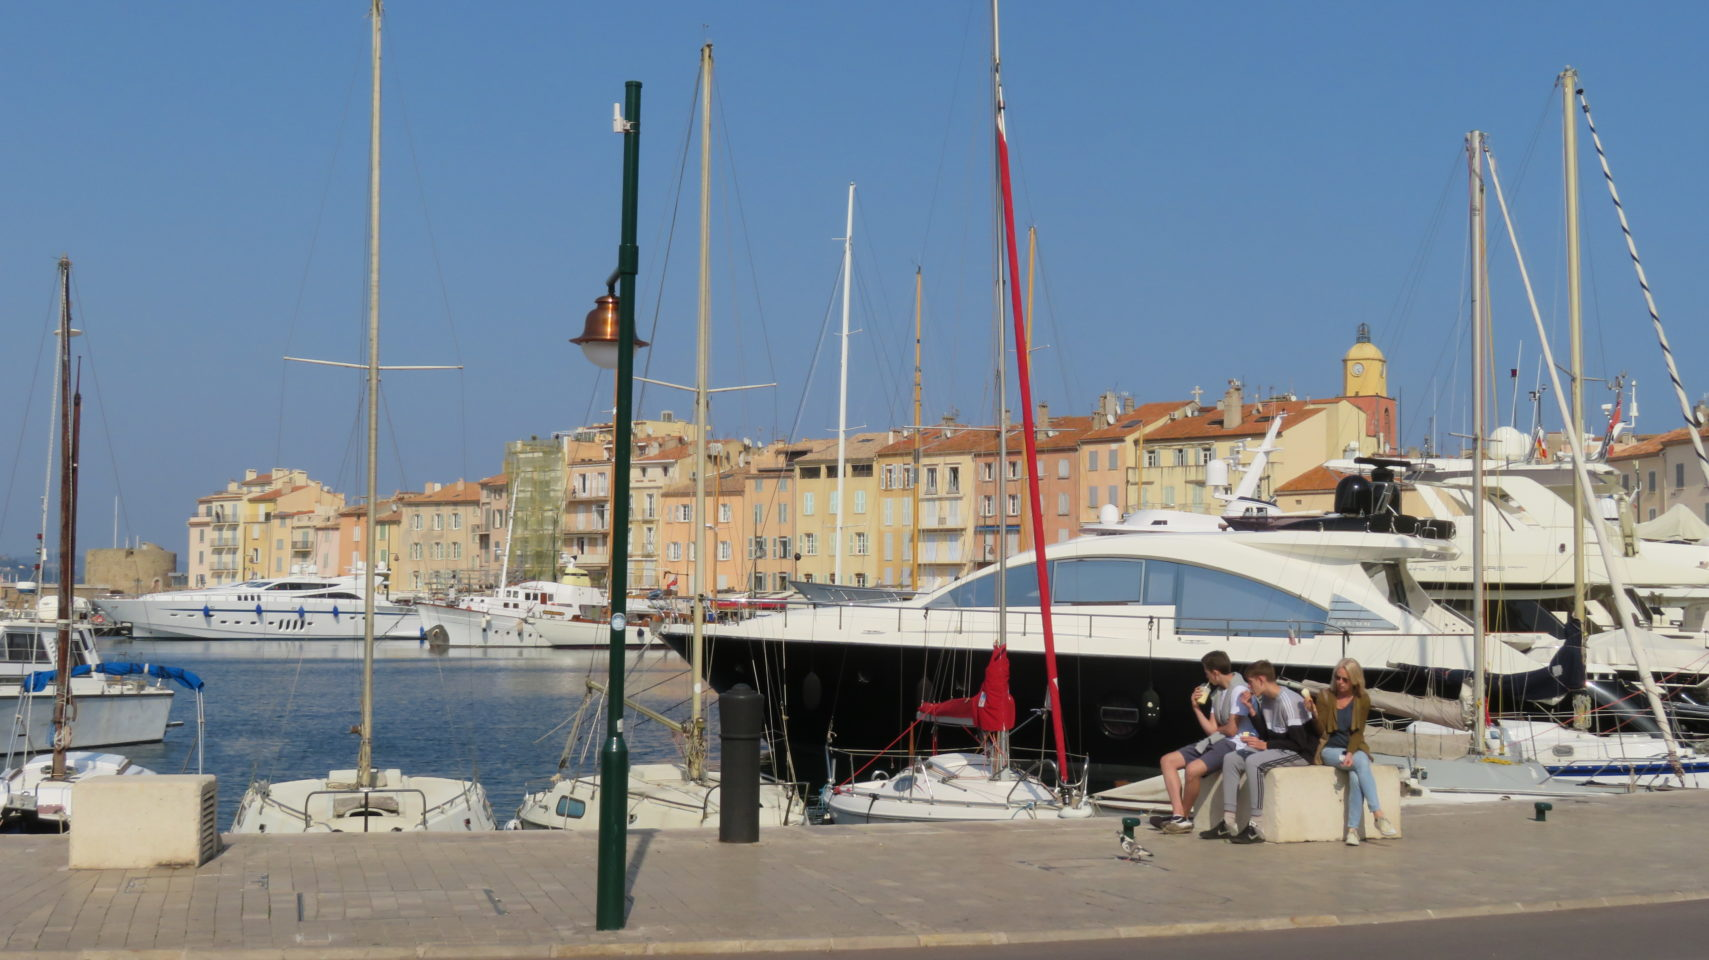 VIKING OCEAN CRUISES ~ St Tropez, France